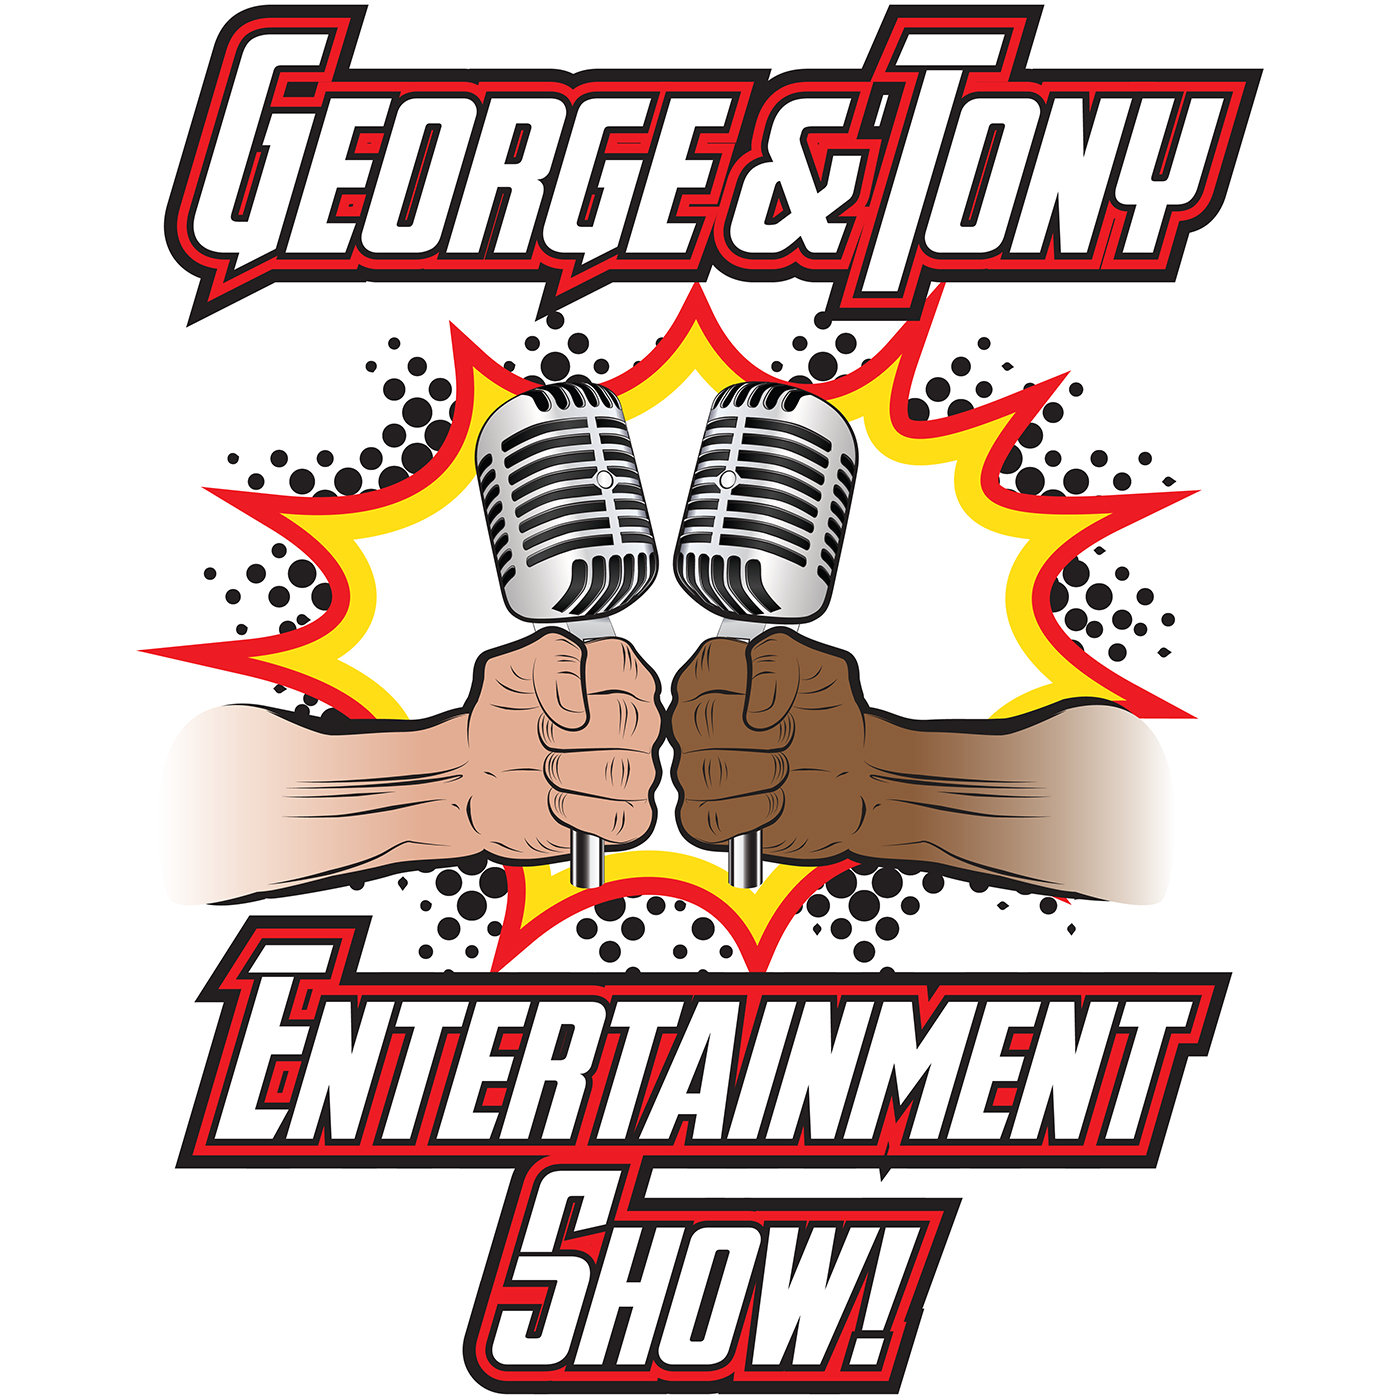 George and Tony Entertainment Show #57